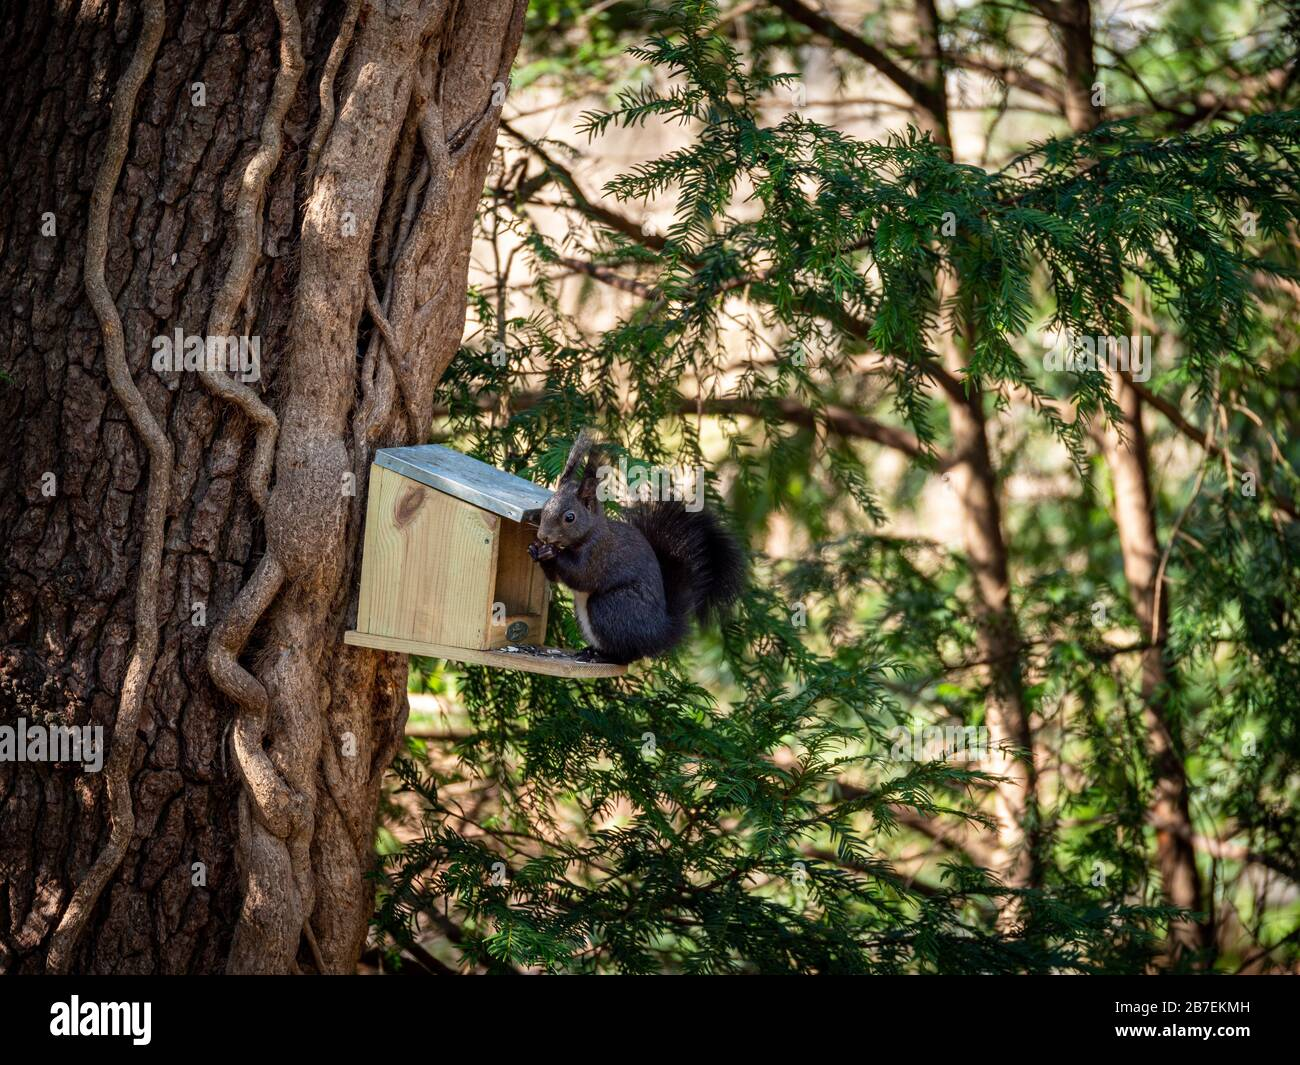 Cute little dark grey squirrel on birs's feeding place eating seeds Stock Photo